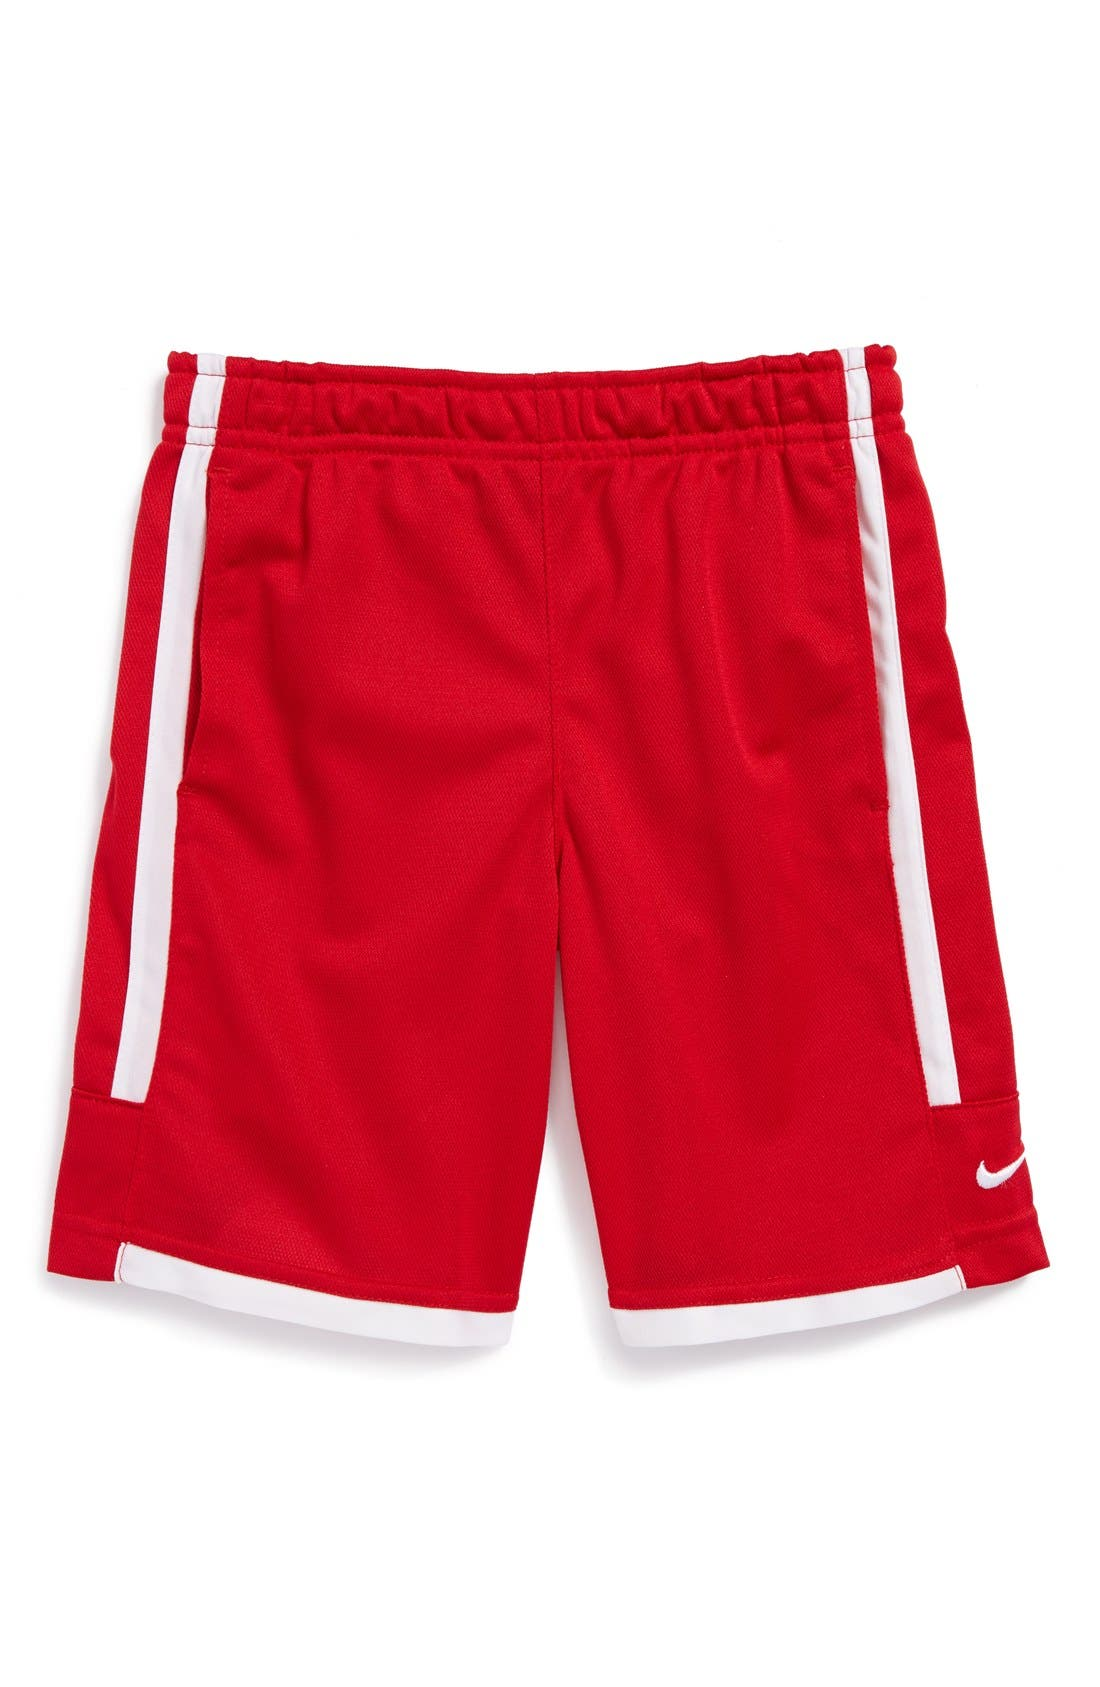 Main Image - Nike 'Double' Dri-FIT Shorts (Little Boys)